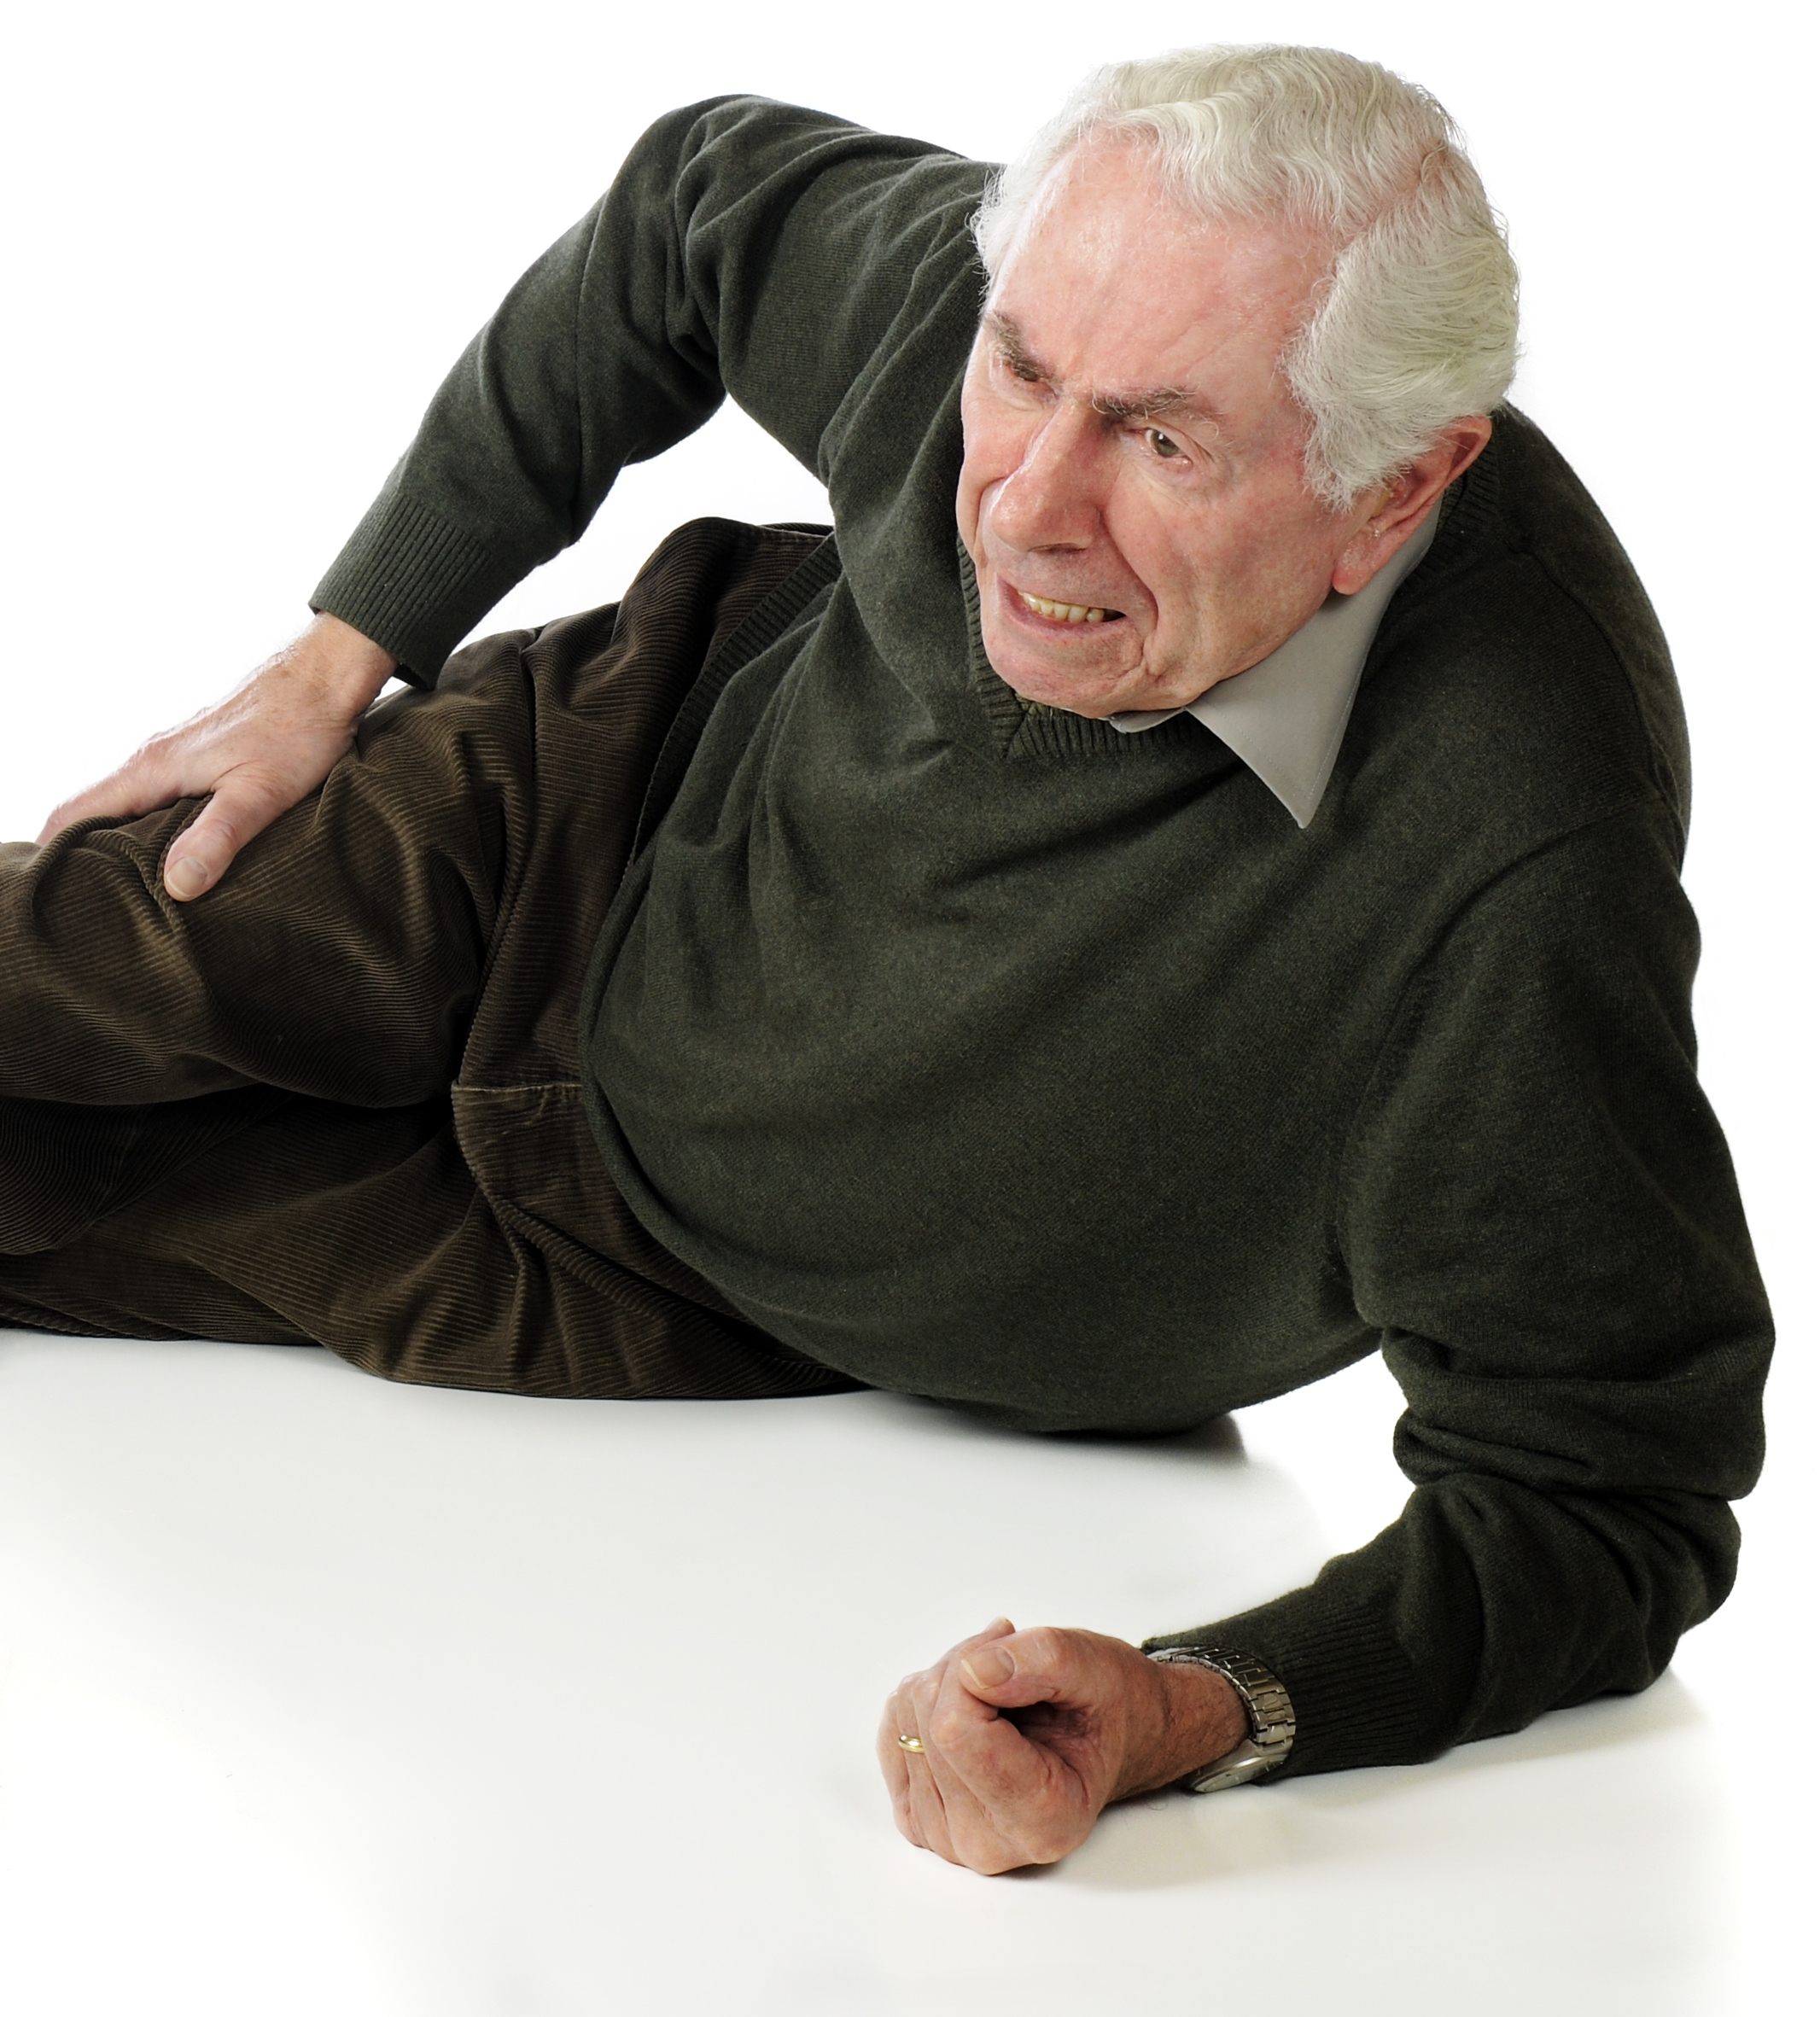 Falling from a Standing Position to the Floor in the Elderly